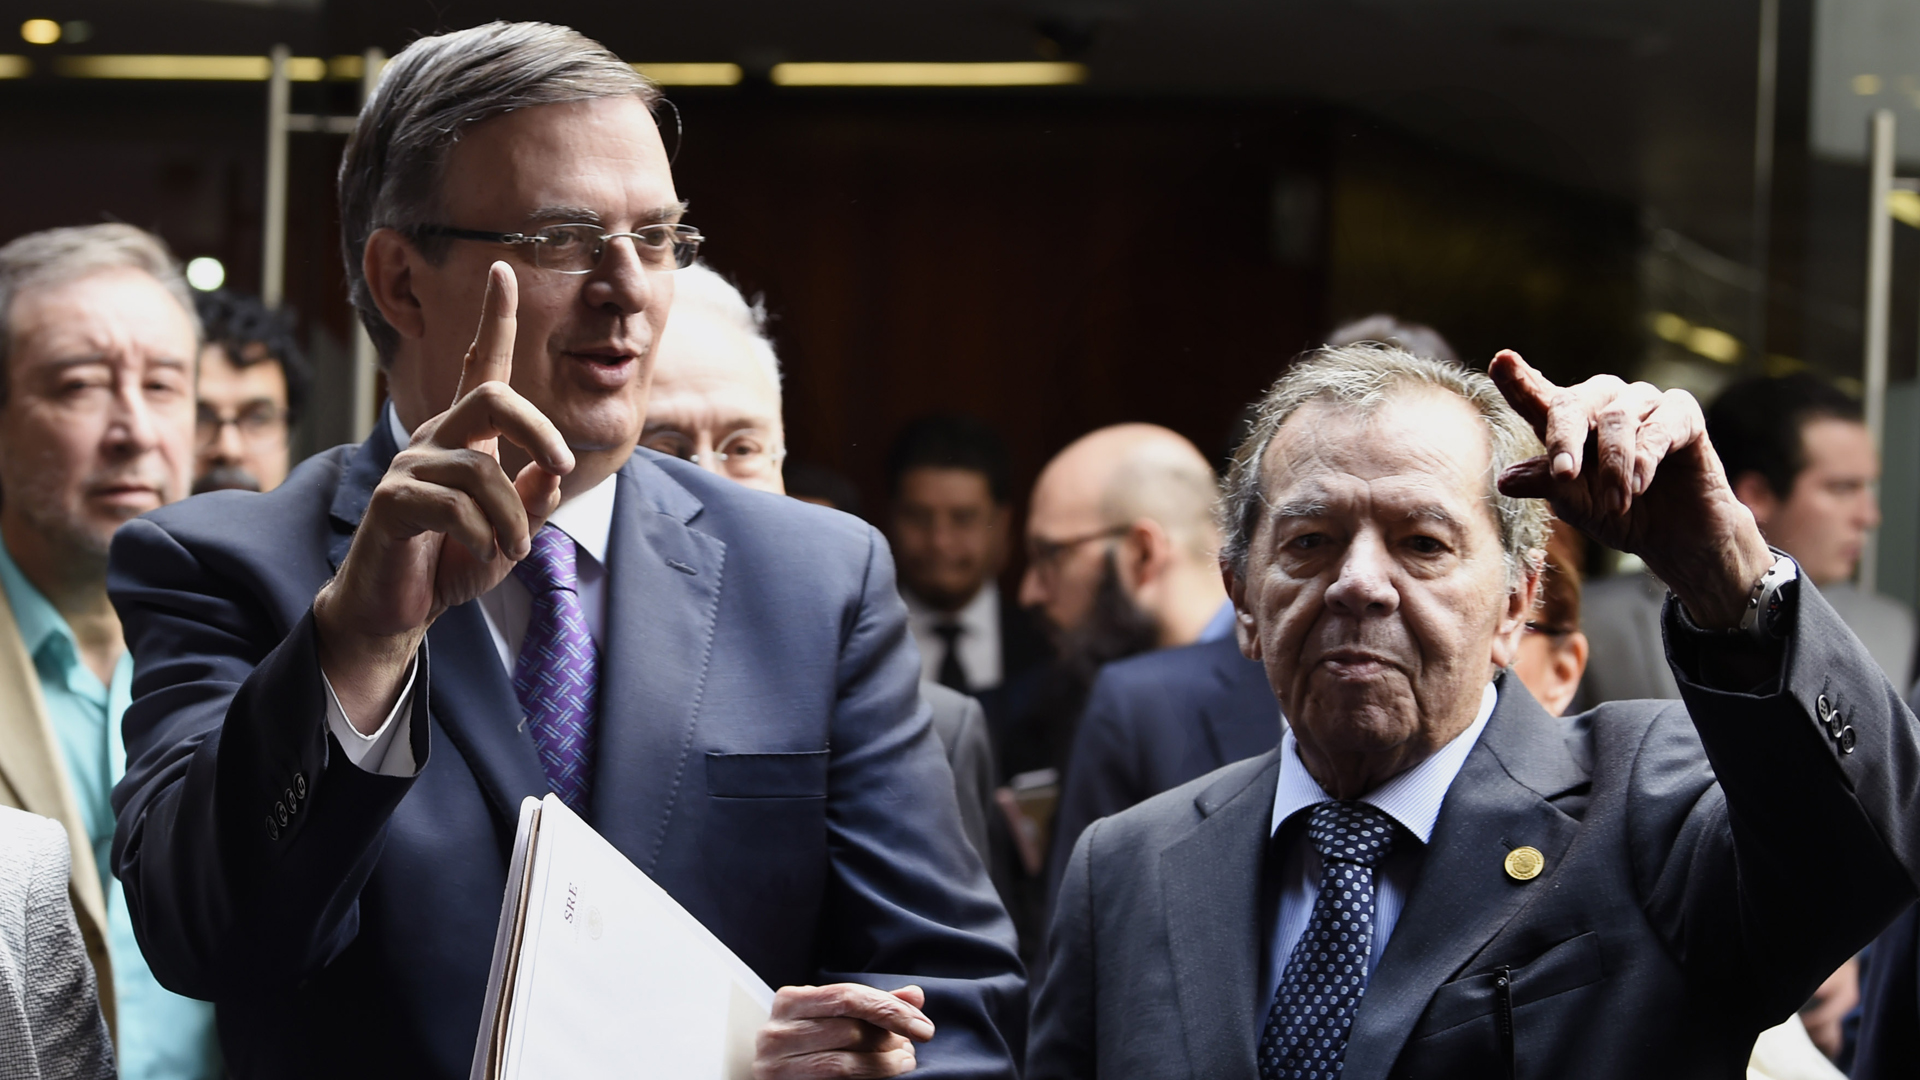 Mexican Foreign Minister Marcelo Ebrard (L) arrives to the Mexican Senate accompanied by the President of the Mexican Congress Porfirio Munoz Ledo, to brief legislators on the US-Mexico migration deal on June 14, 2019. (Credit: Alfredo Esrella/AFP/Getty Images)